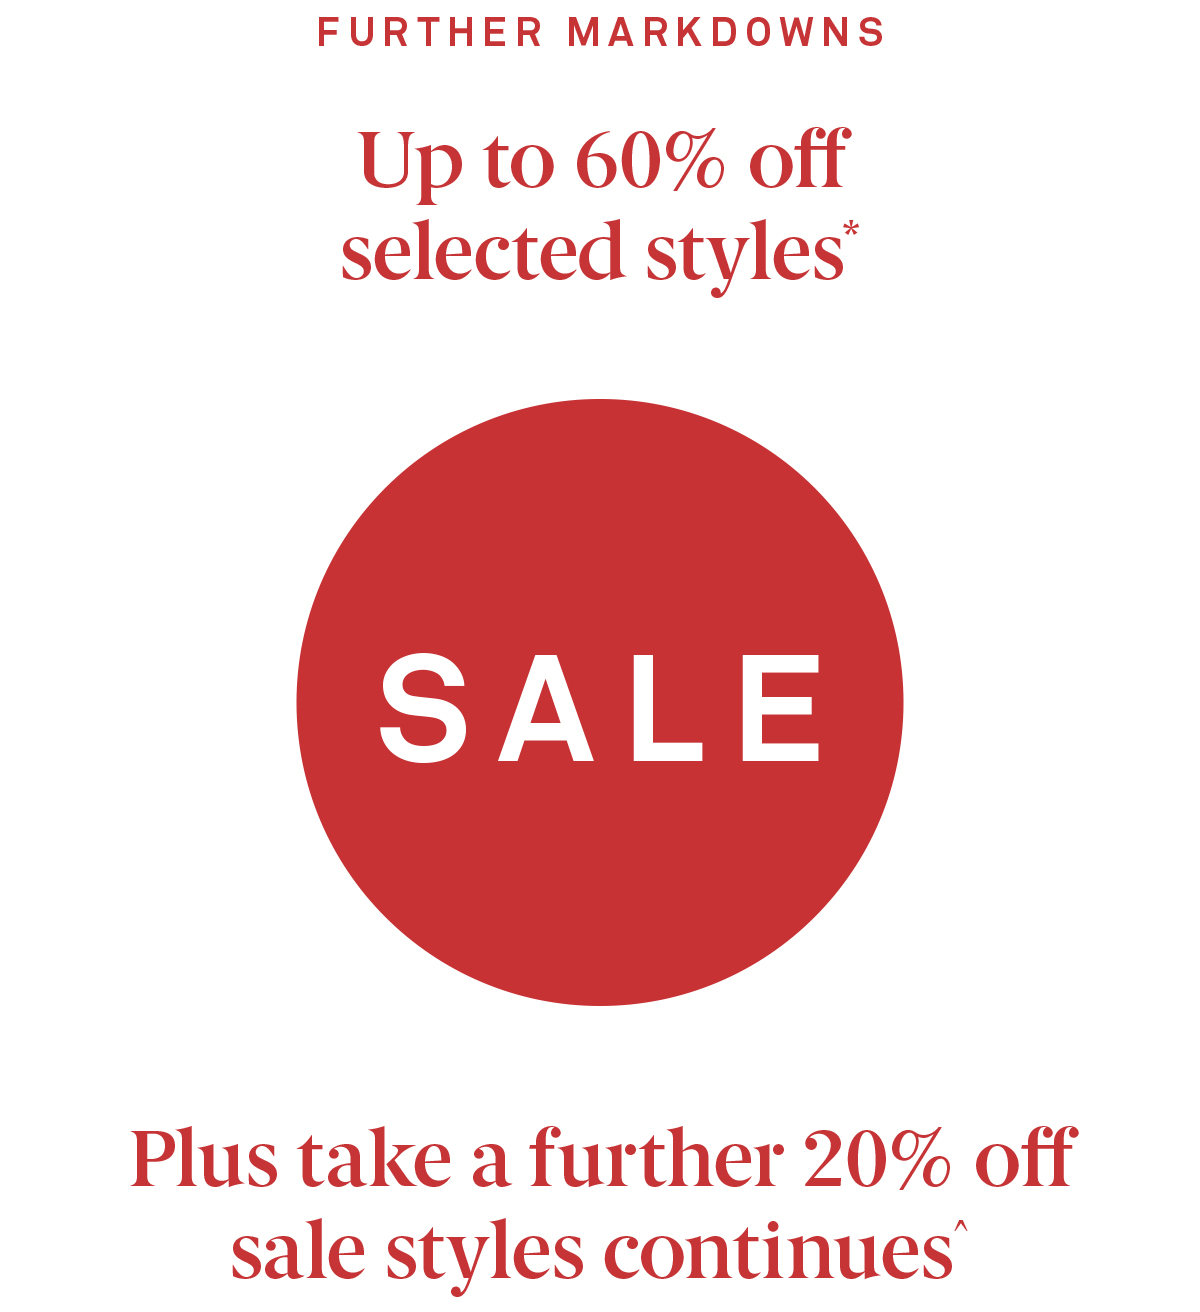 Sale Take a further 20% off sale styles^